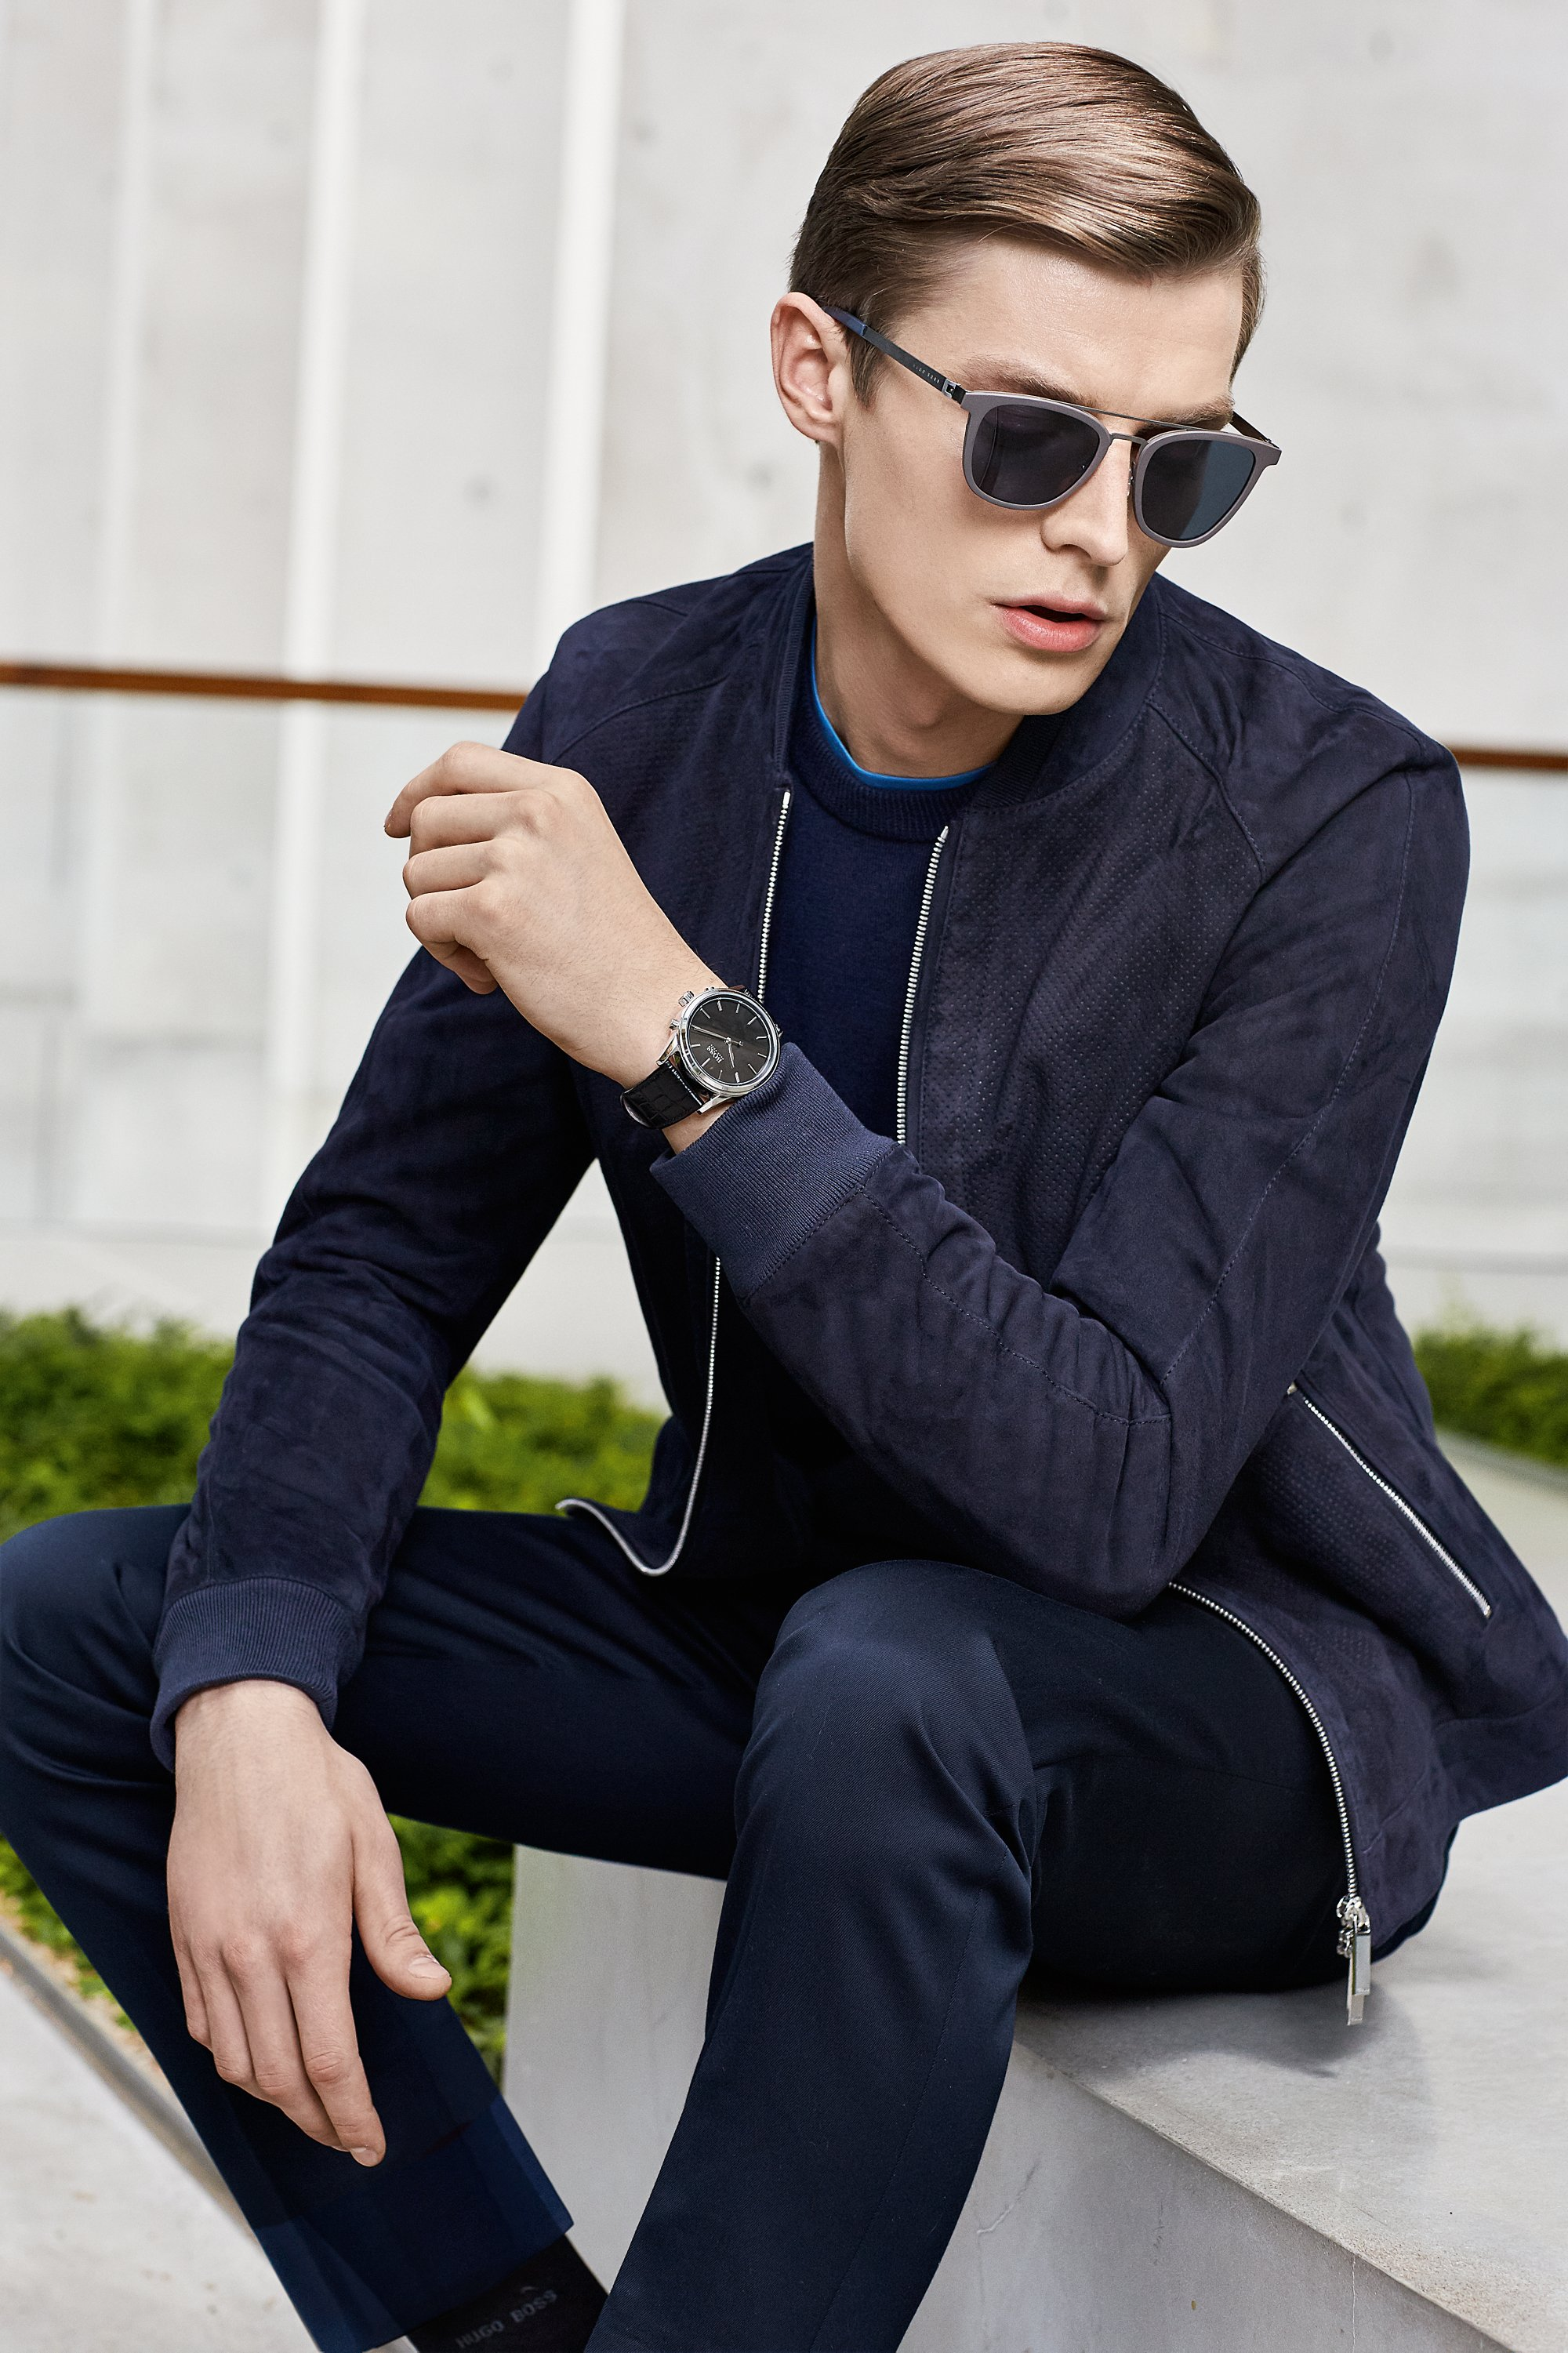 Dark blue leather jacket, jersey and trousers paired with glasses and a watch by BOSS